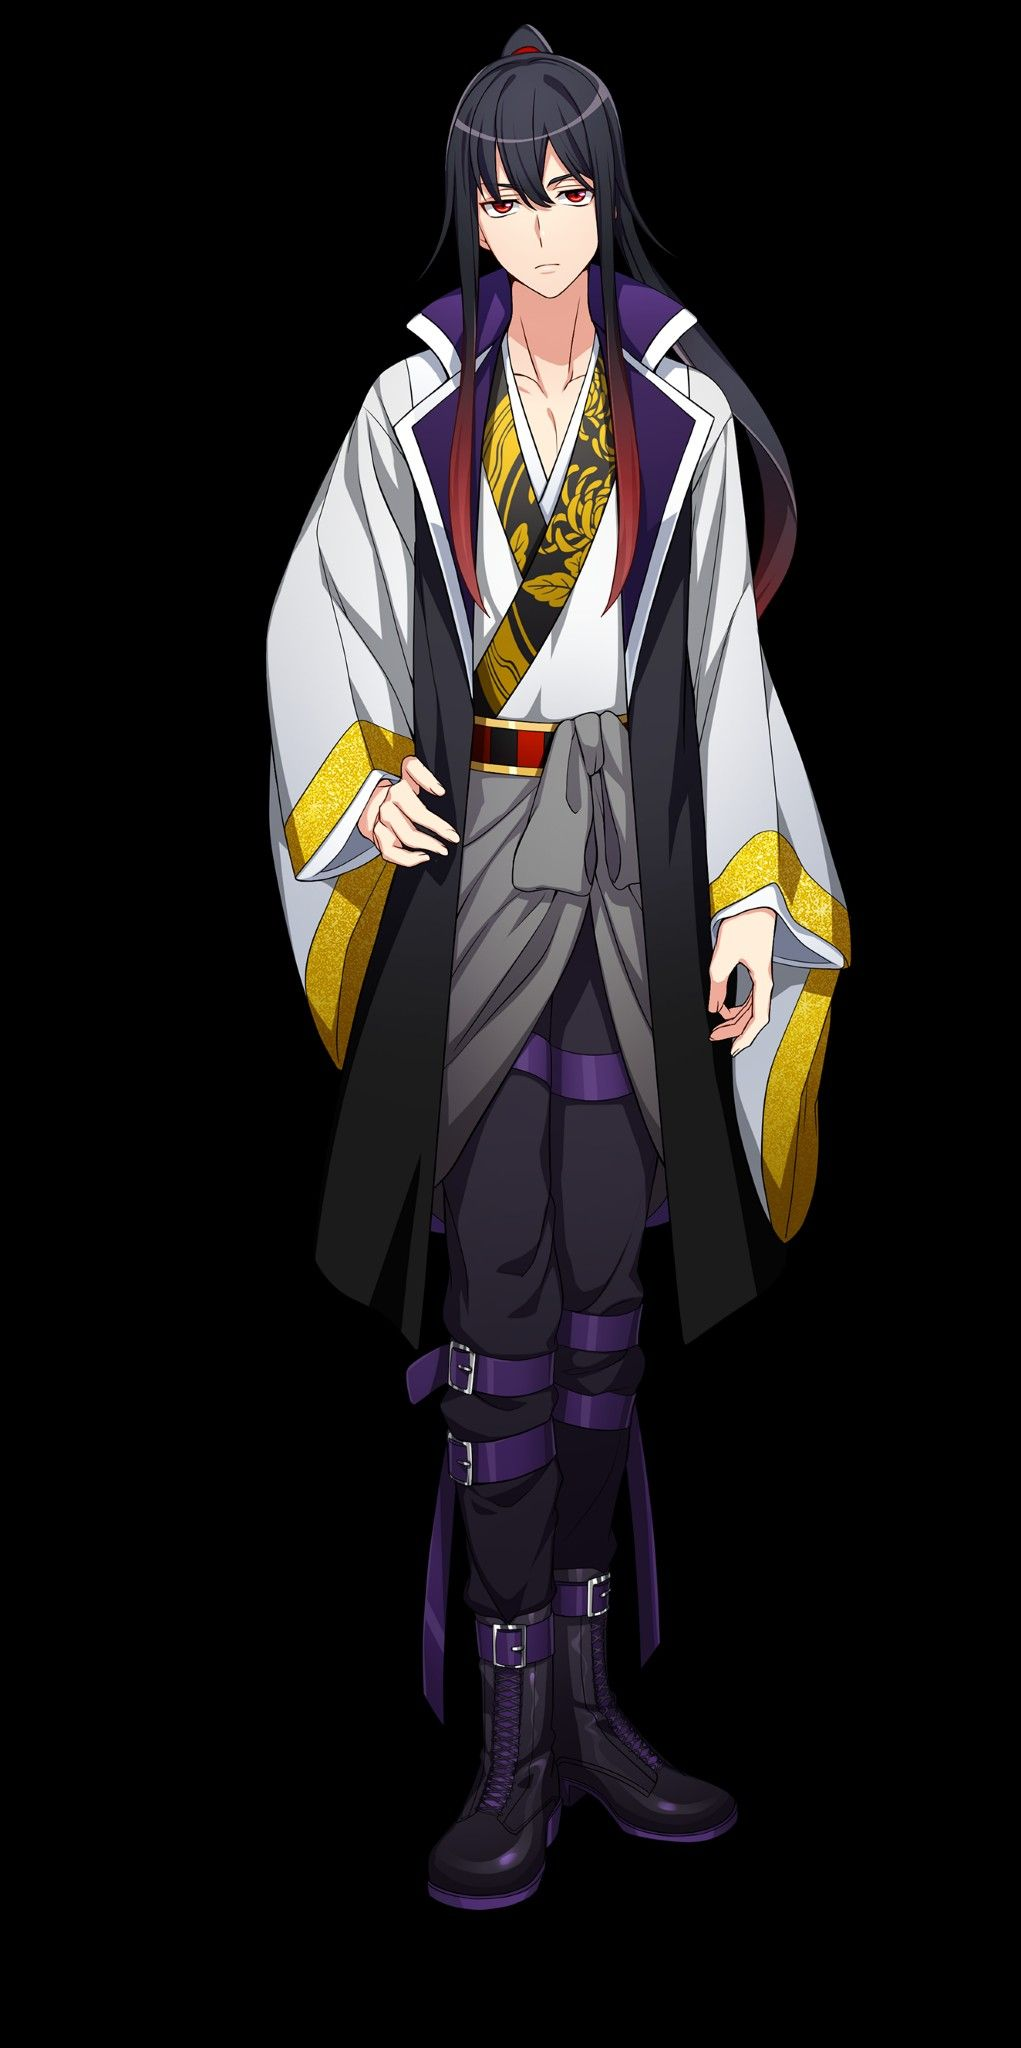 Ren Mikami Character, Fictional characters, Anime